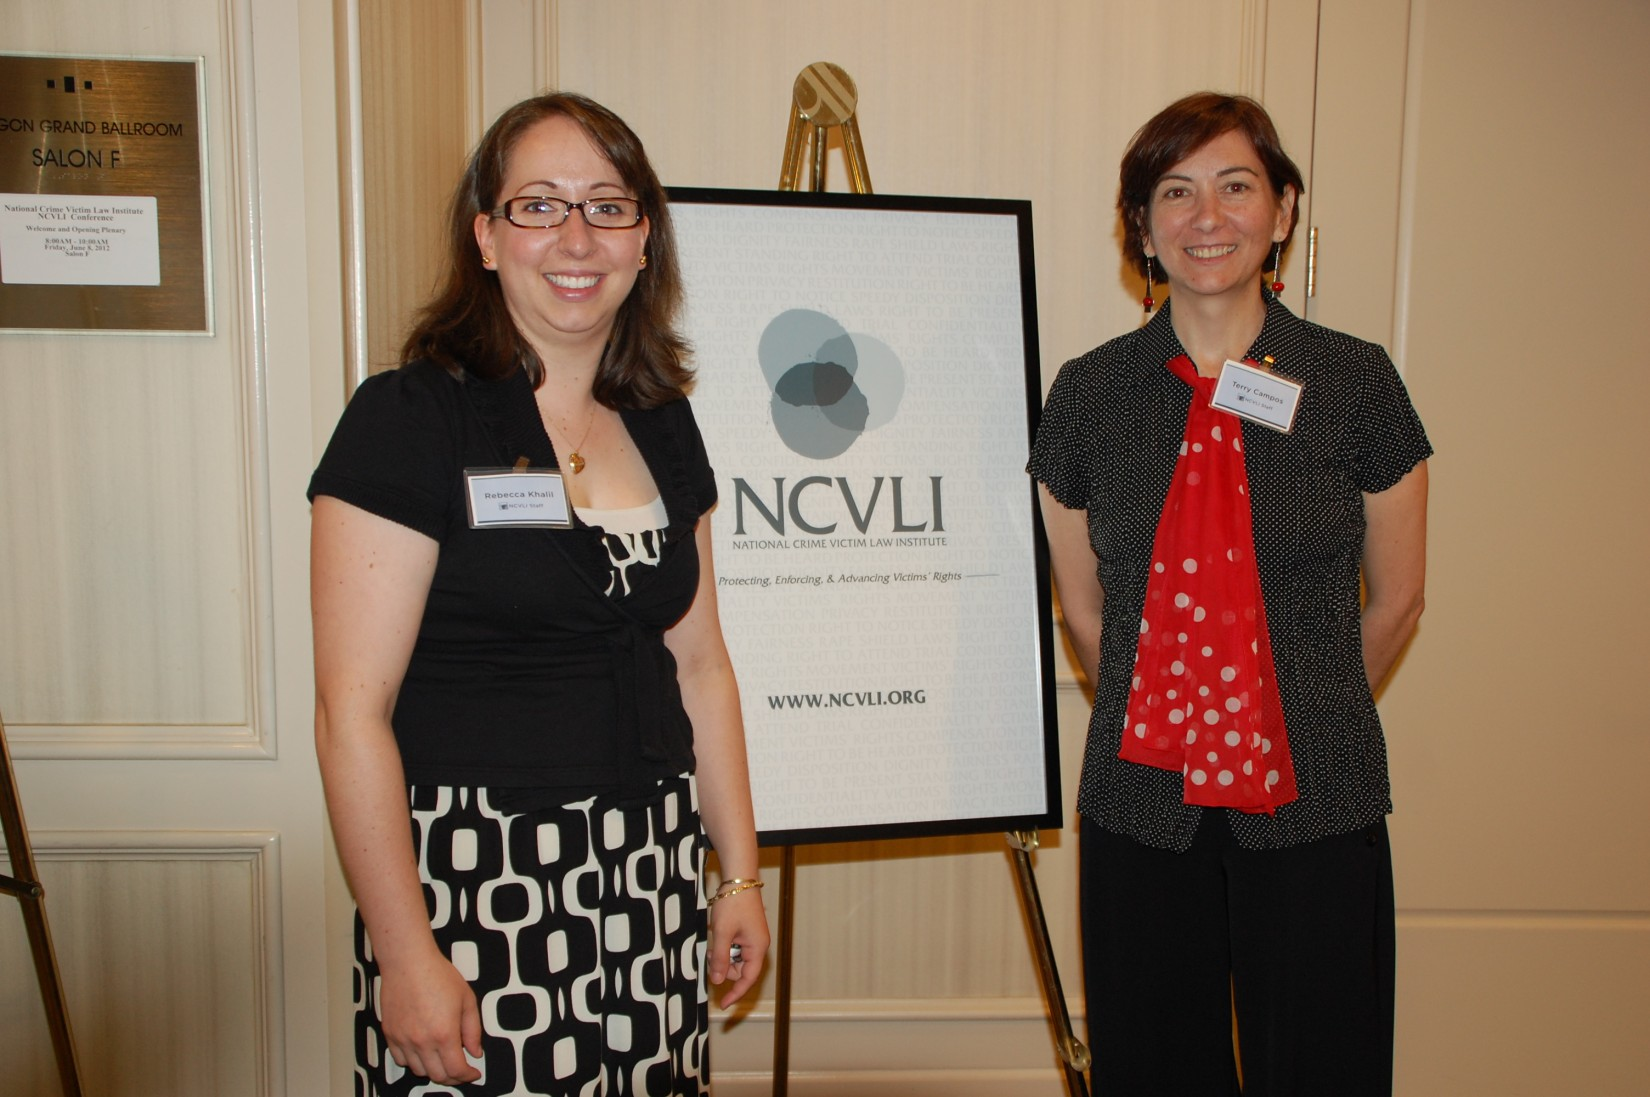 NCVLI staff members Rebecca Khalil and Terry Campos.